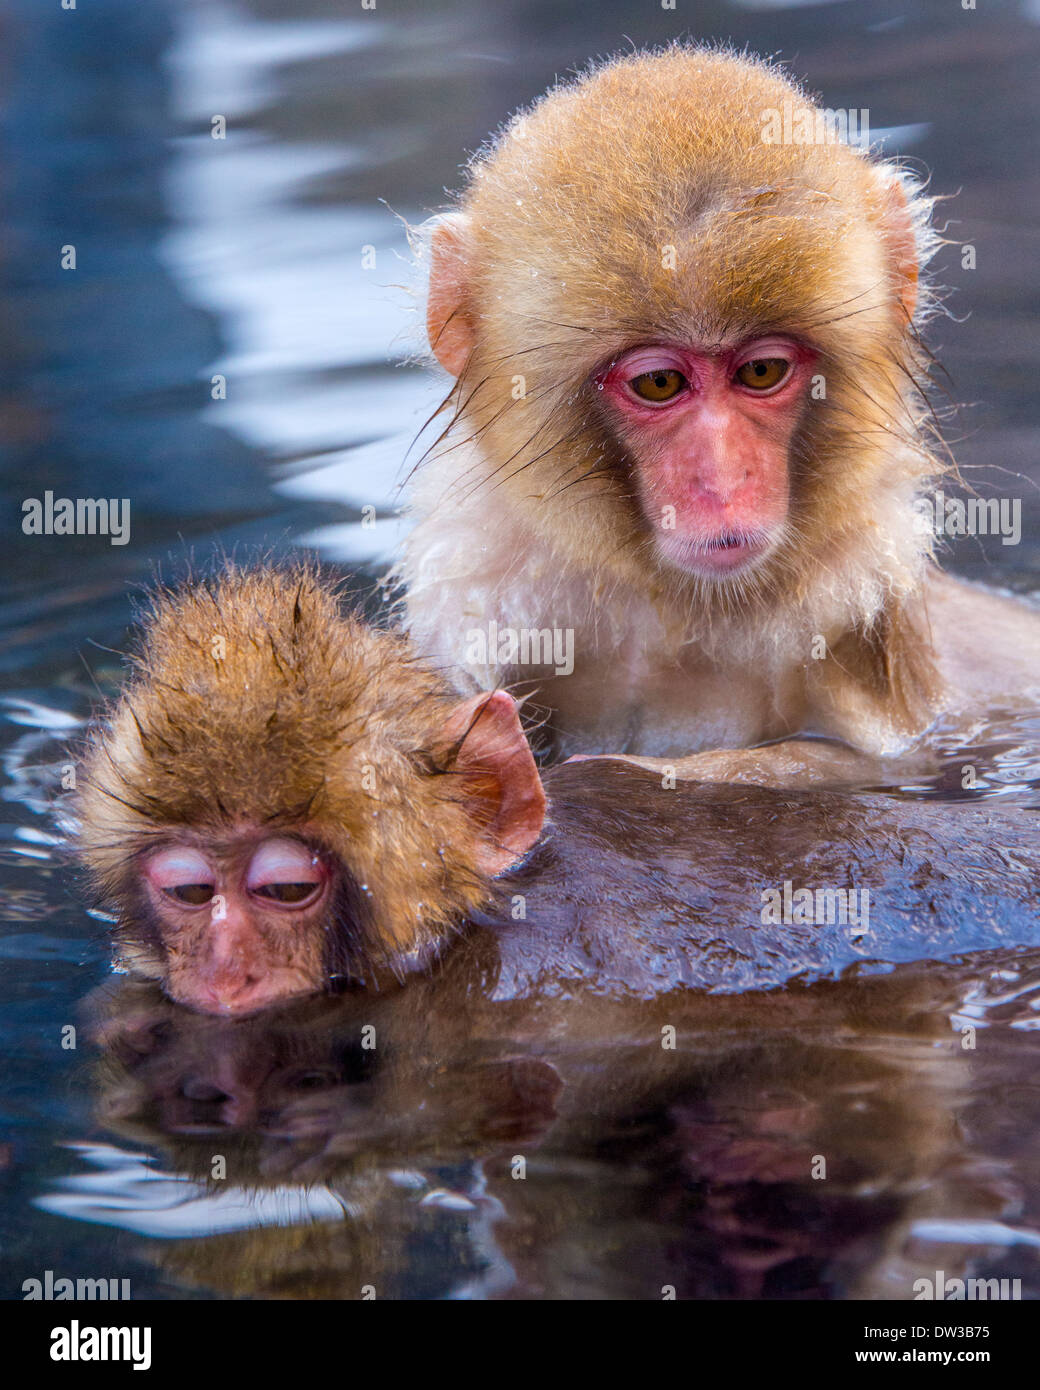 Japanese Snow Monkeys in Nagano, Japan. Stock Photo